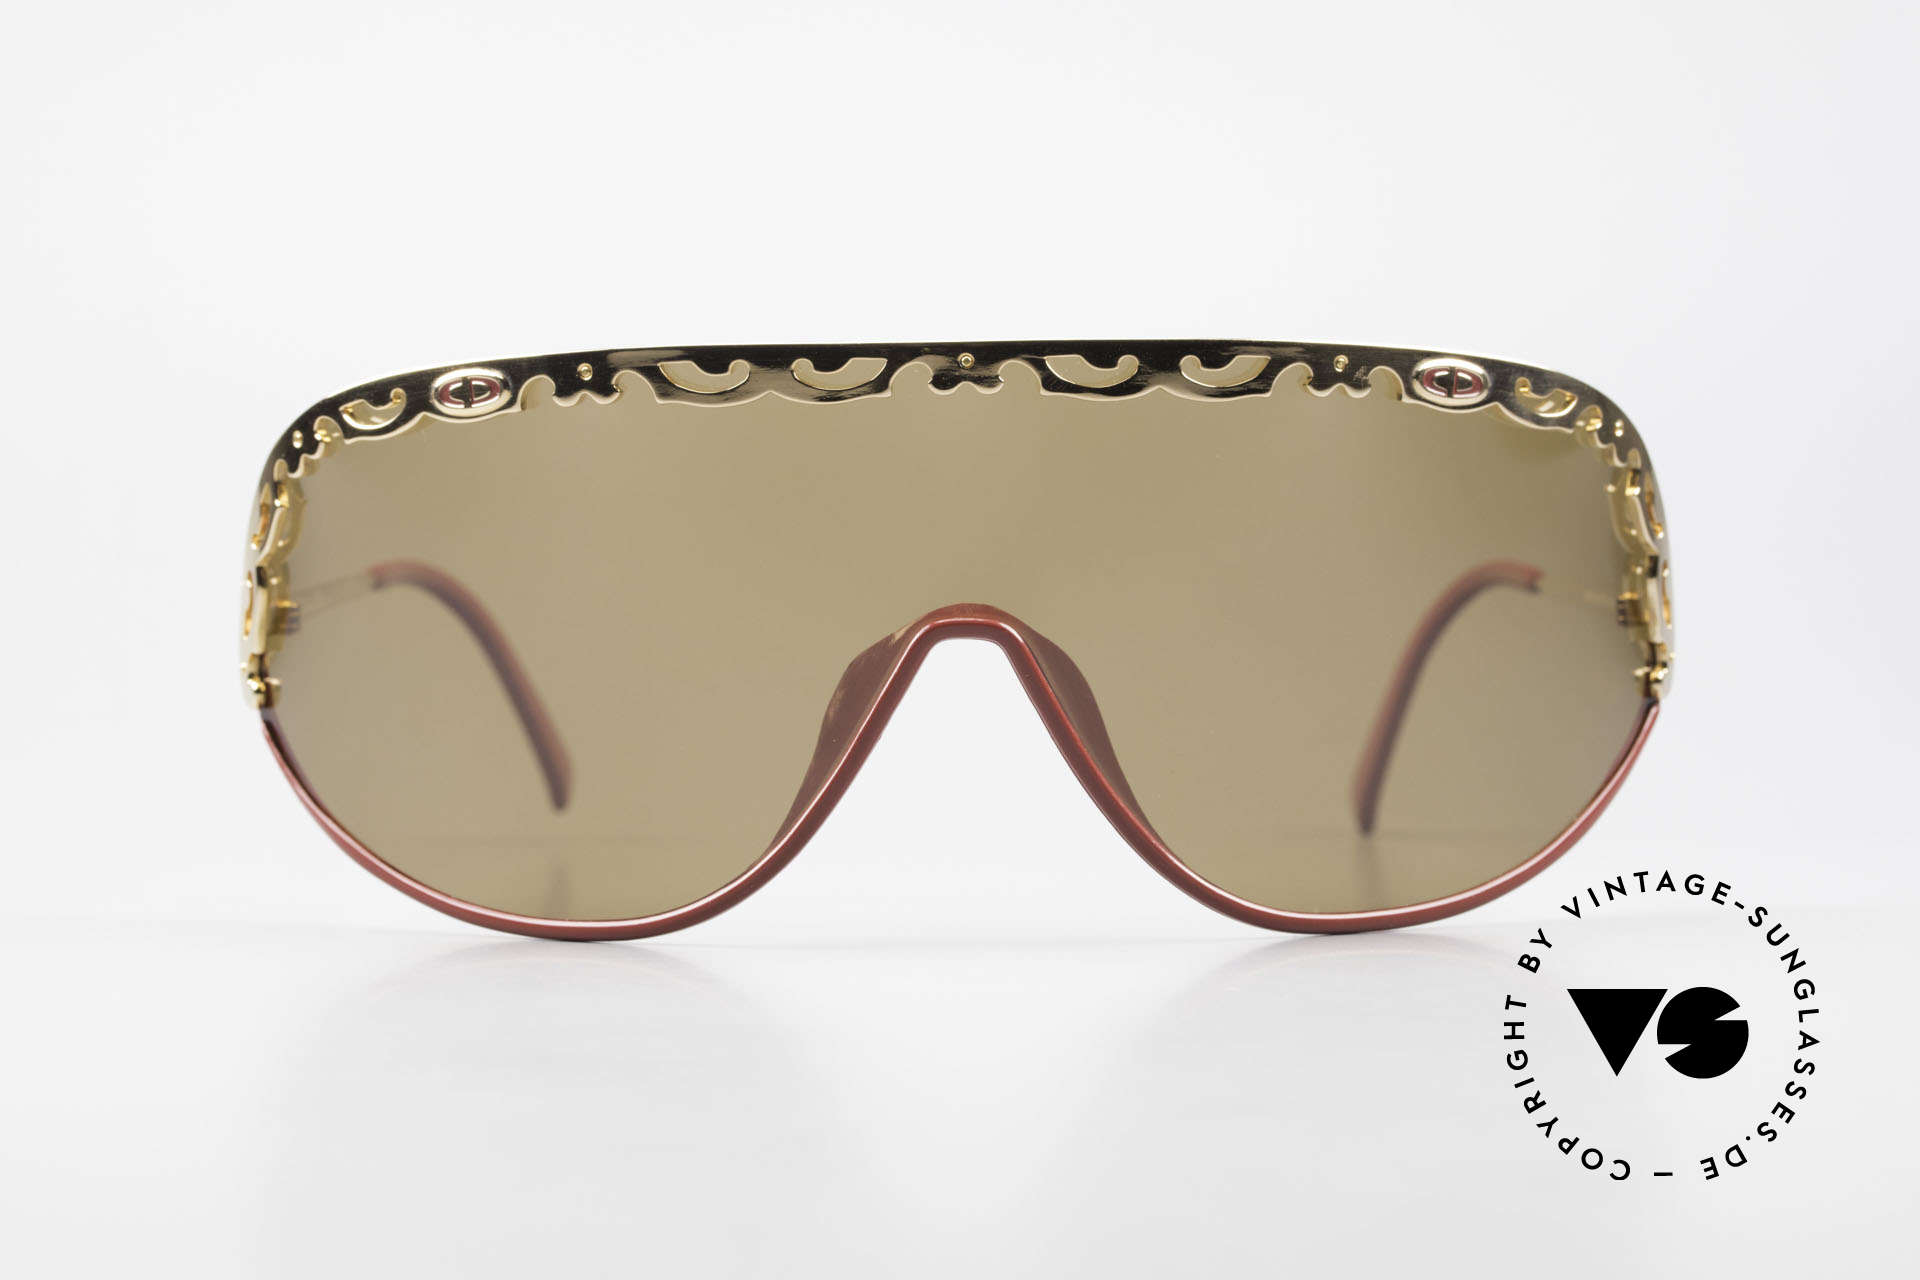 Christian Dior 2501 Panorama View Sunglasses 80's, one large, single shade in X-Large size (vintage shield), Made for Women